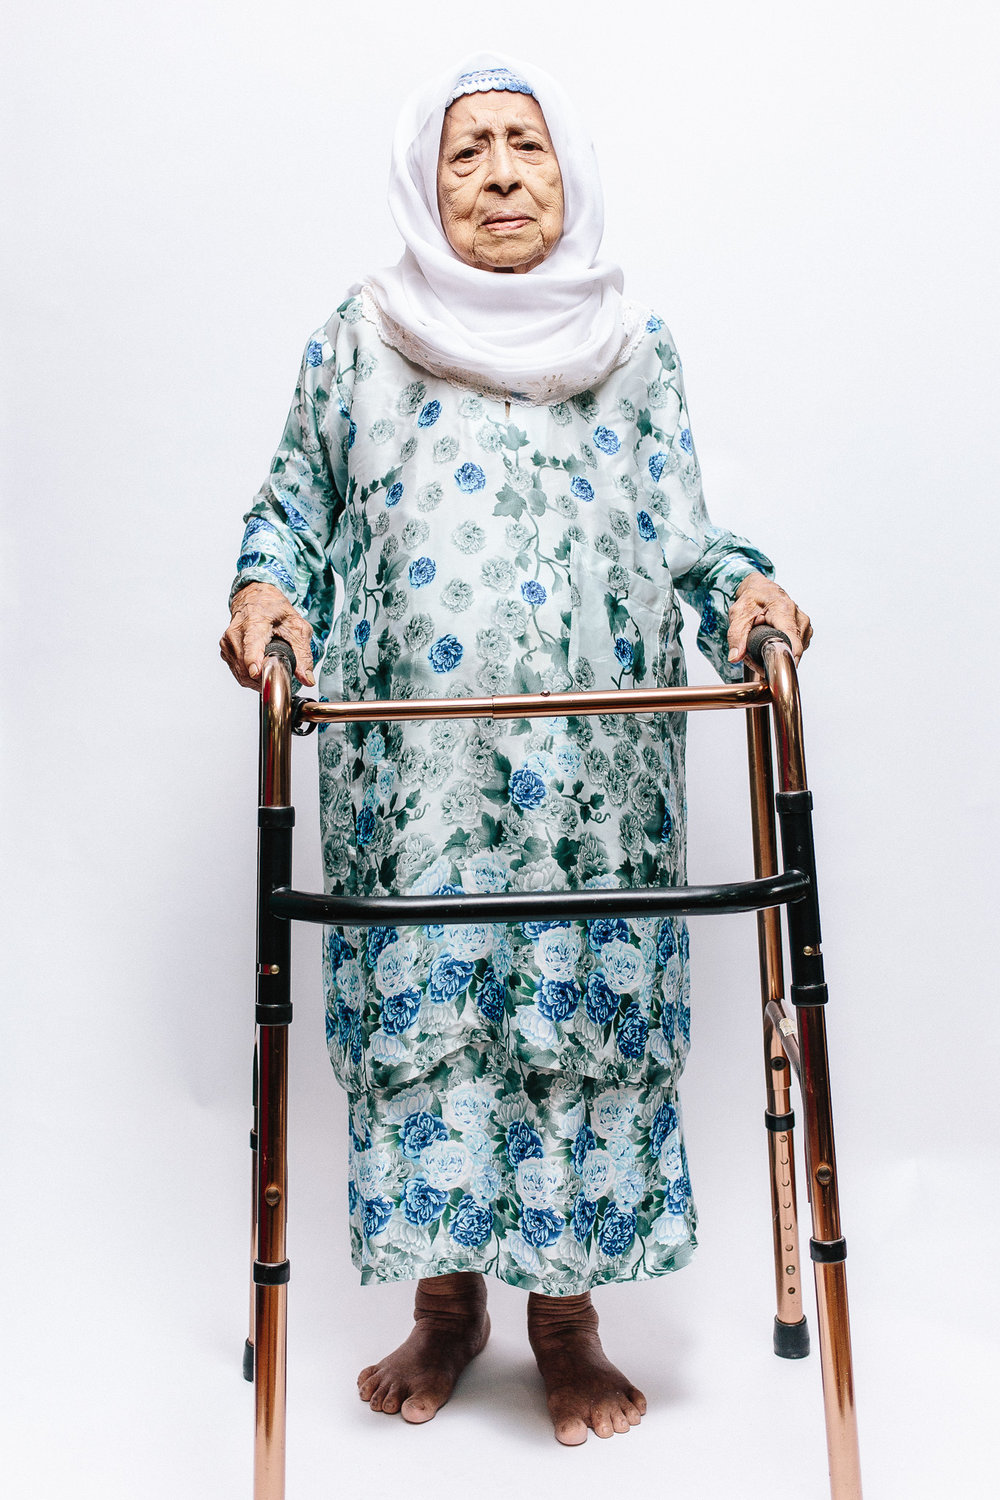 zainal-zainal-studio-centenarians-care-duke-nus-singapore-photographer-02.jpg